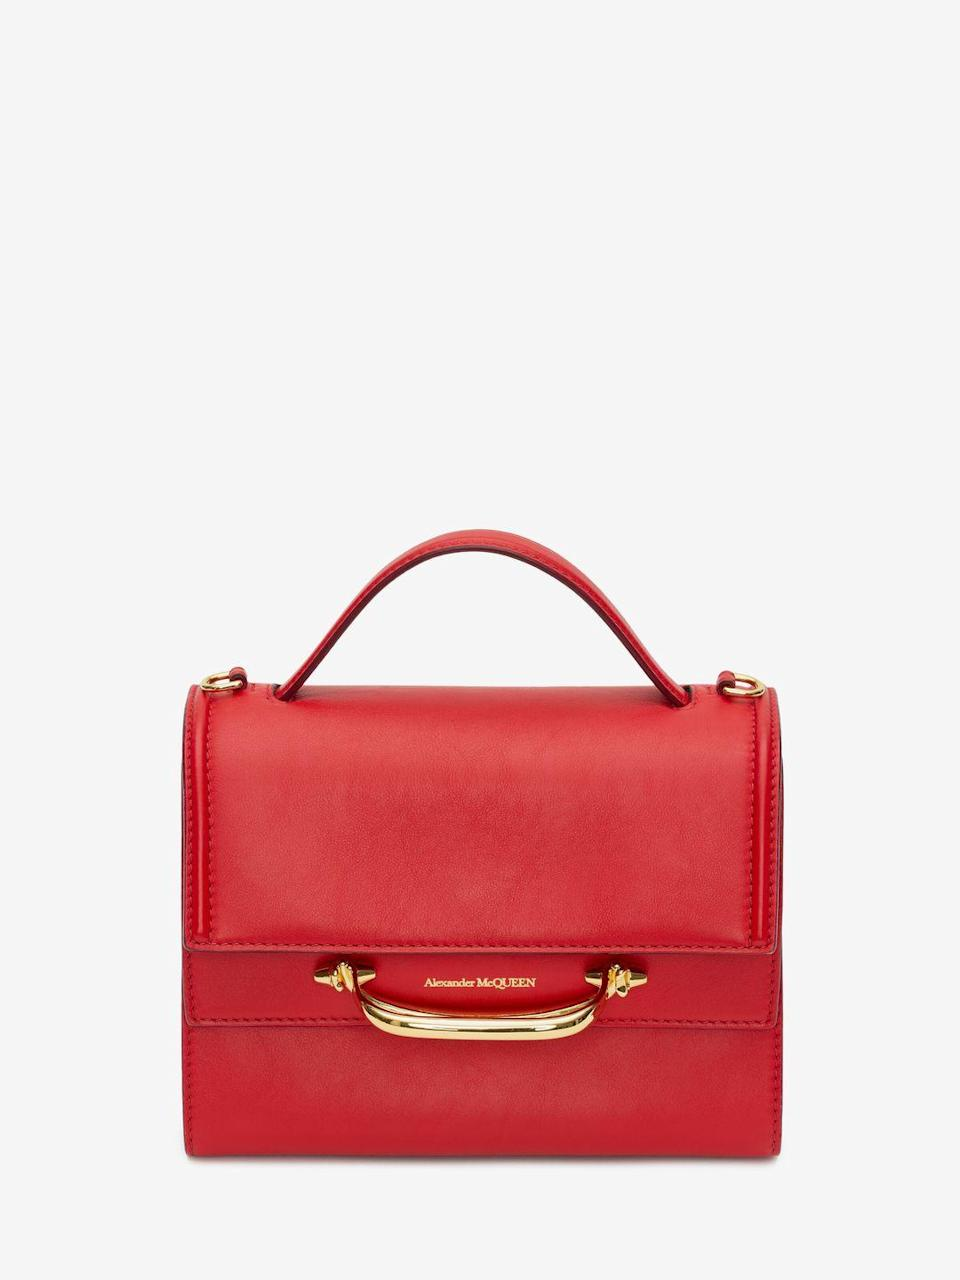 """<p><a class=""""link rapid-noclick-resp"""" href=""""https://go.redirectingat.com?id=127X1599956&url=https%3A%2F%2Fwww.alexandermcqueen.com%2Fen-gb%2Fthe-story%2Fthe-story-610021D78AT6080.html&sref=https%3A%2F%2Fwww.townandcountrymag.com%2Fuk%2Fstyle%2Fg35320192%2Fwhat-to-wear-for-an-at-home-lunar-new-year%2F"""" rel=""""nofollow noopener"""" target=""""_blank"""" data-ylk=""""slk:SHOP NOW"""">SHOP NOW</a></p><p>Alexander McQueen's iconic red story bag adds a sophisticated touch of red to celebrations.</p><p>Handbag, £1,650, Alexander McQueen.</p>"""